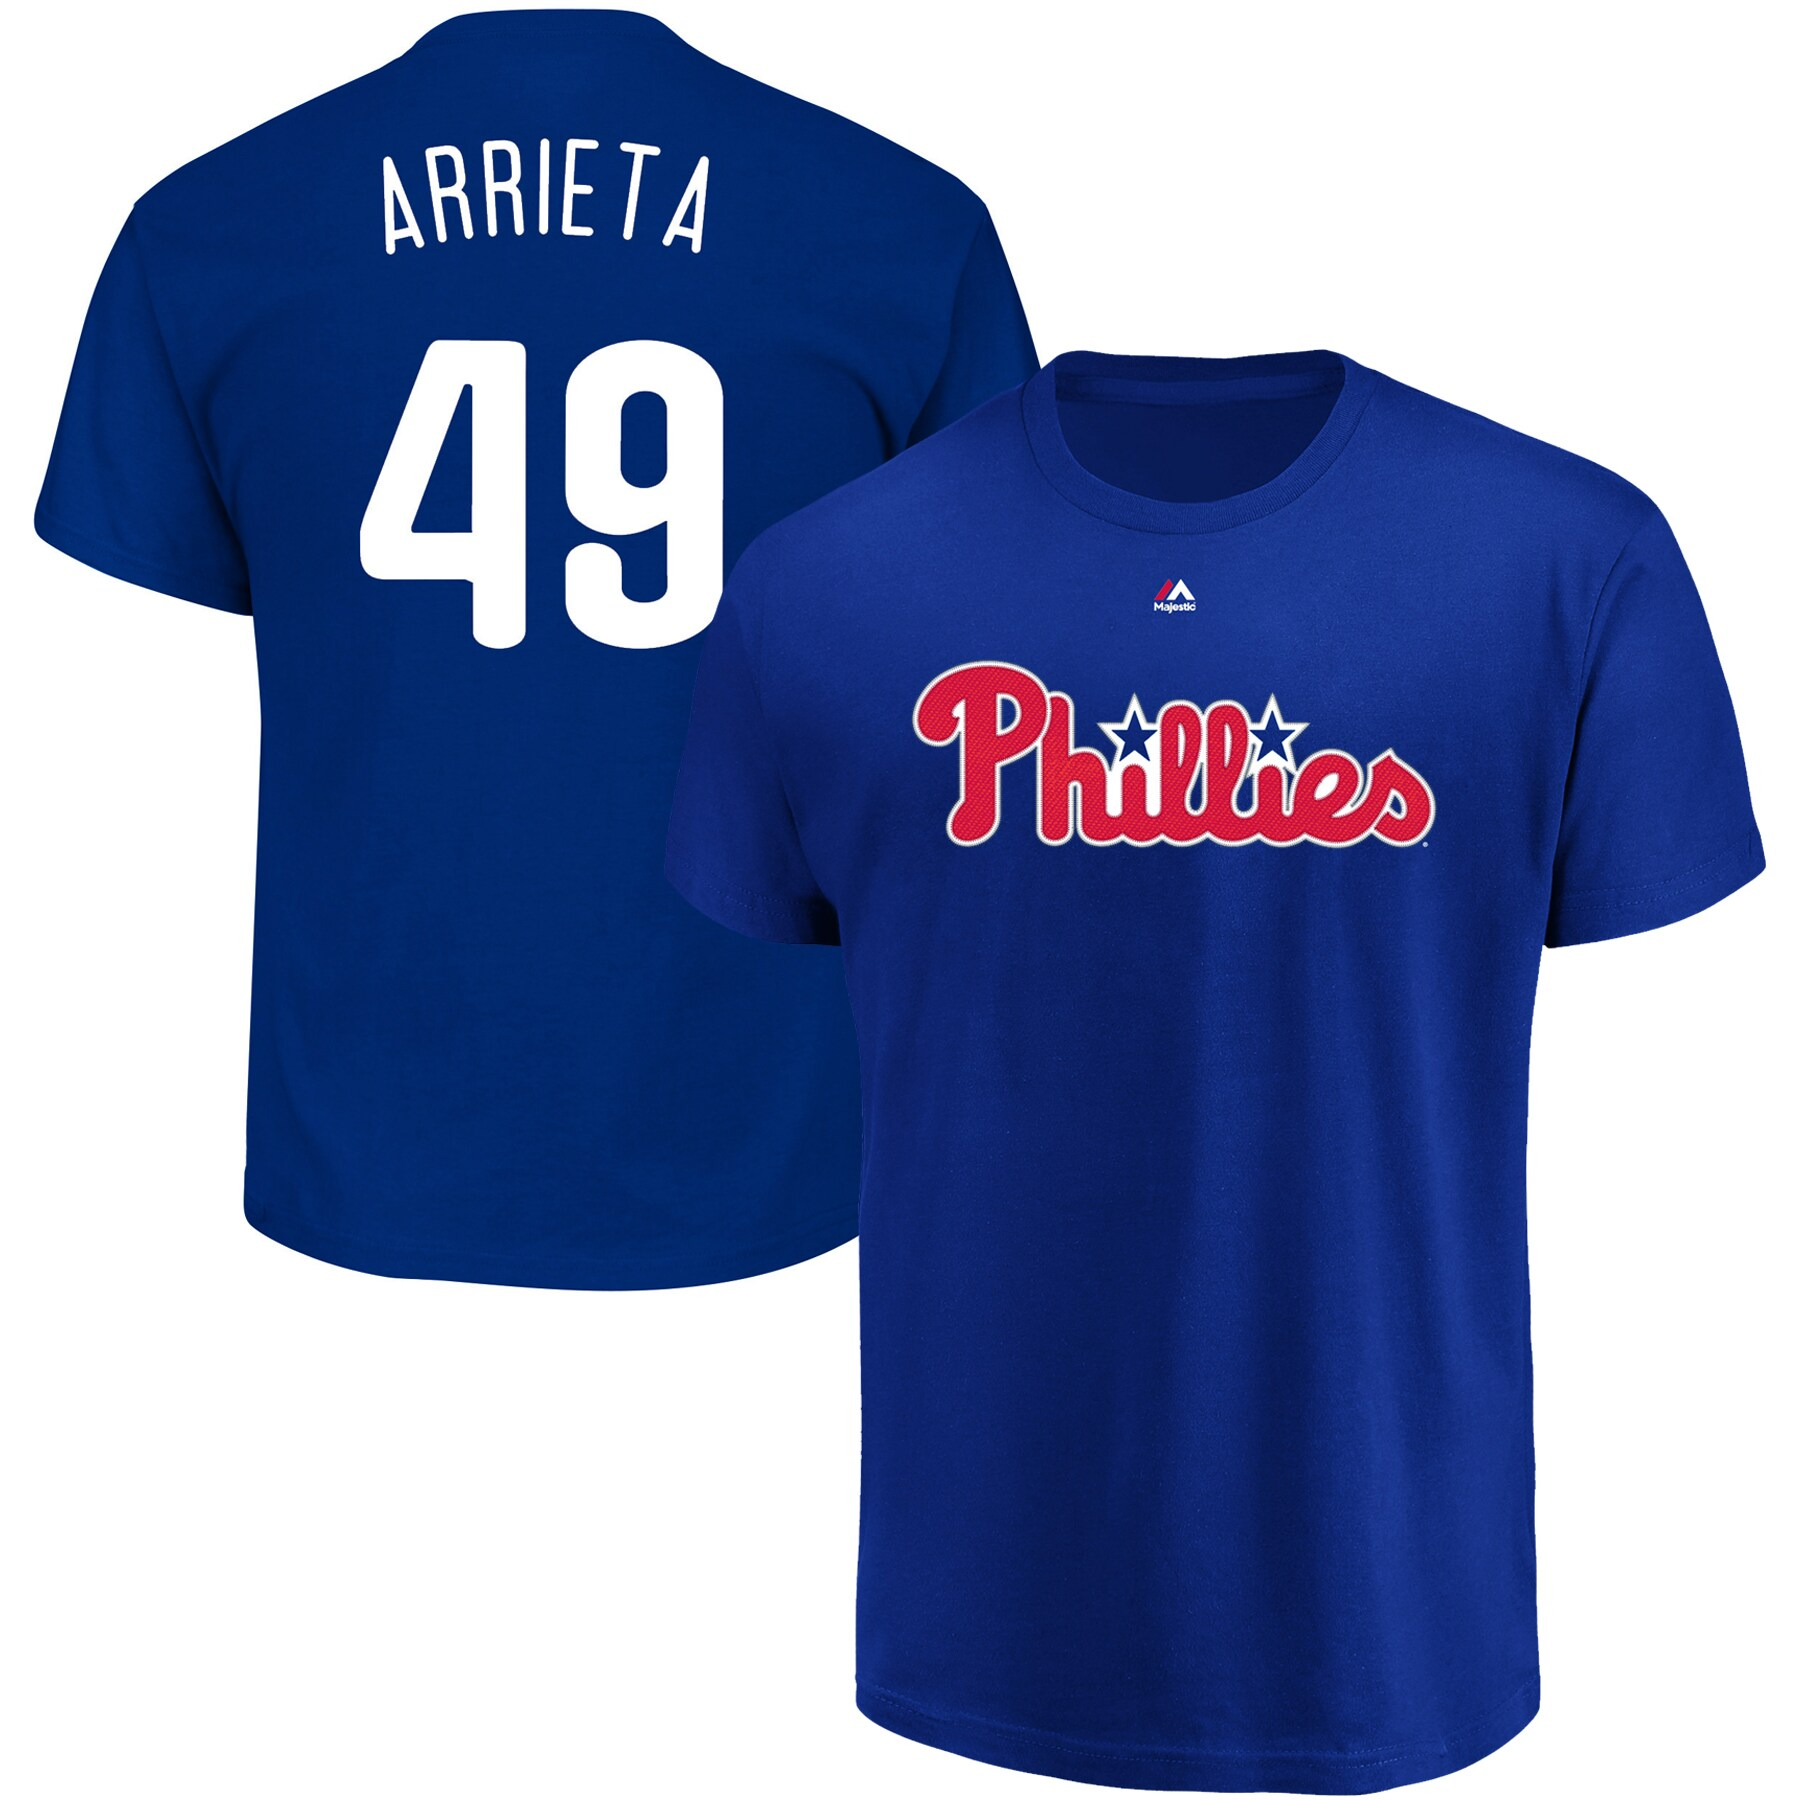 Jake Arrieta Philadelphia Phillies Majestic Official Name & Number T-Shirt - Royal